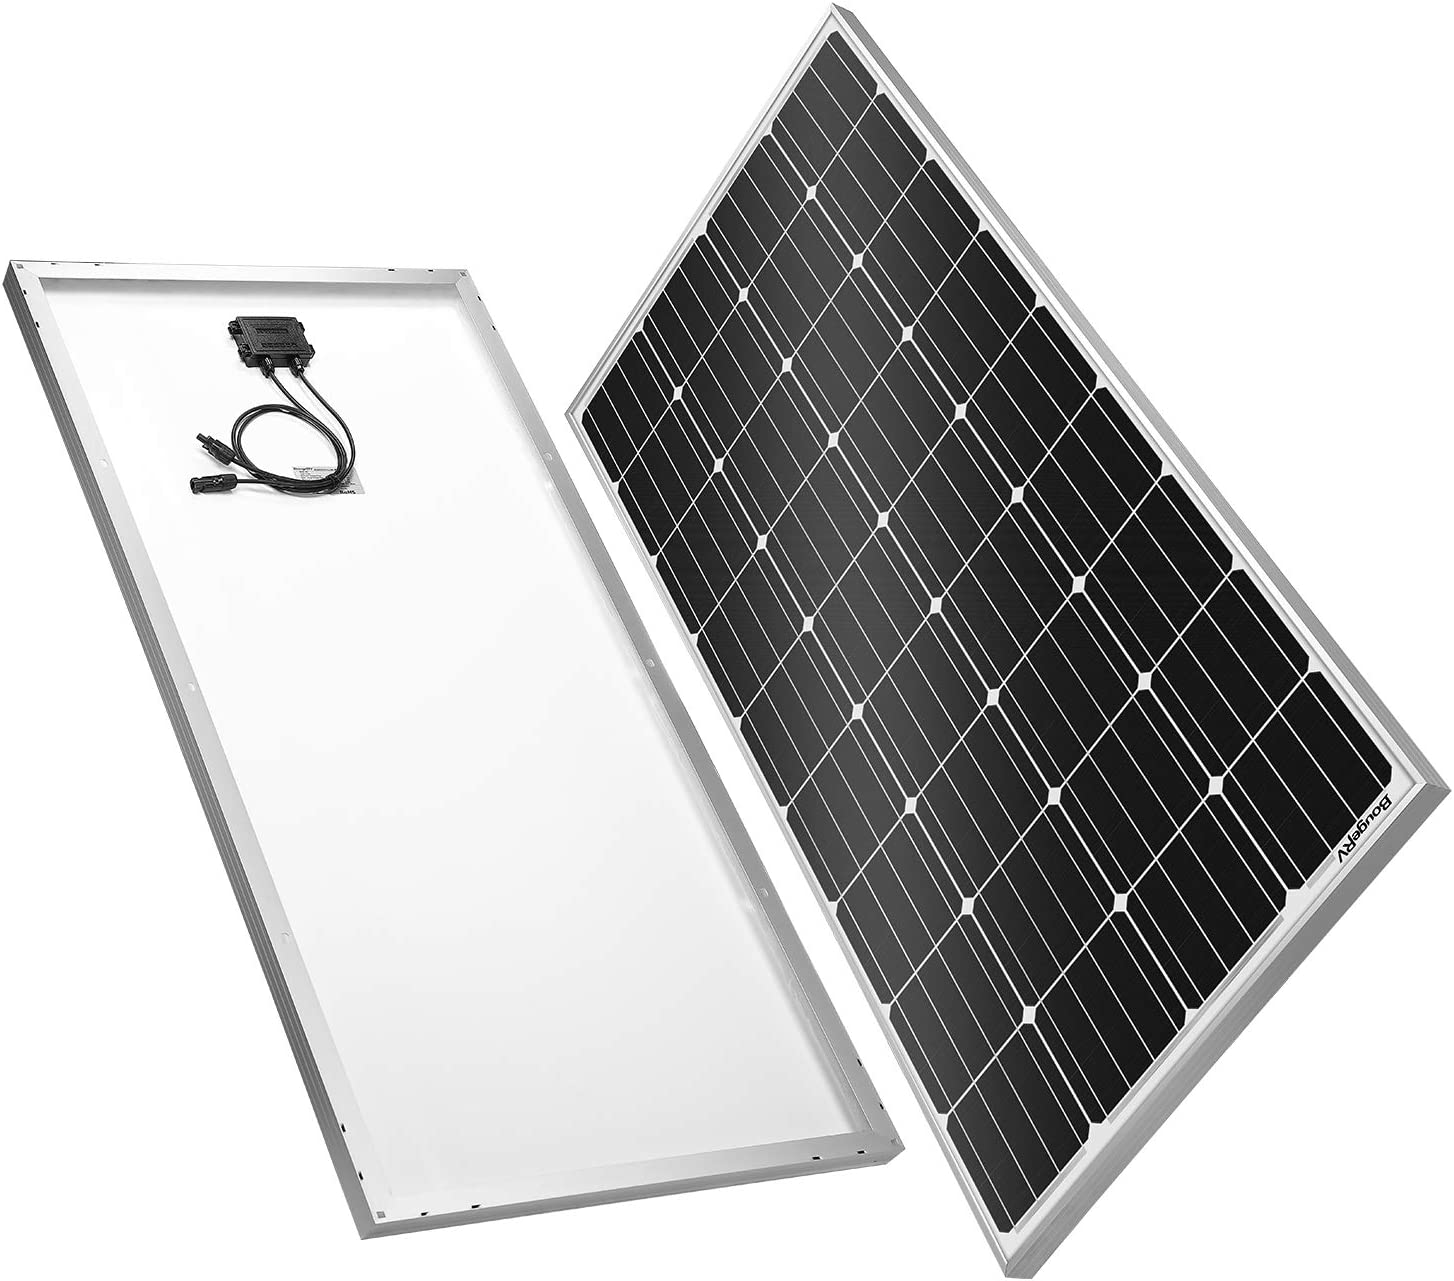 5 Best Solar Panels for Cloudy Days Reviews of 2020 2